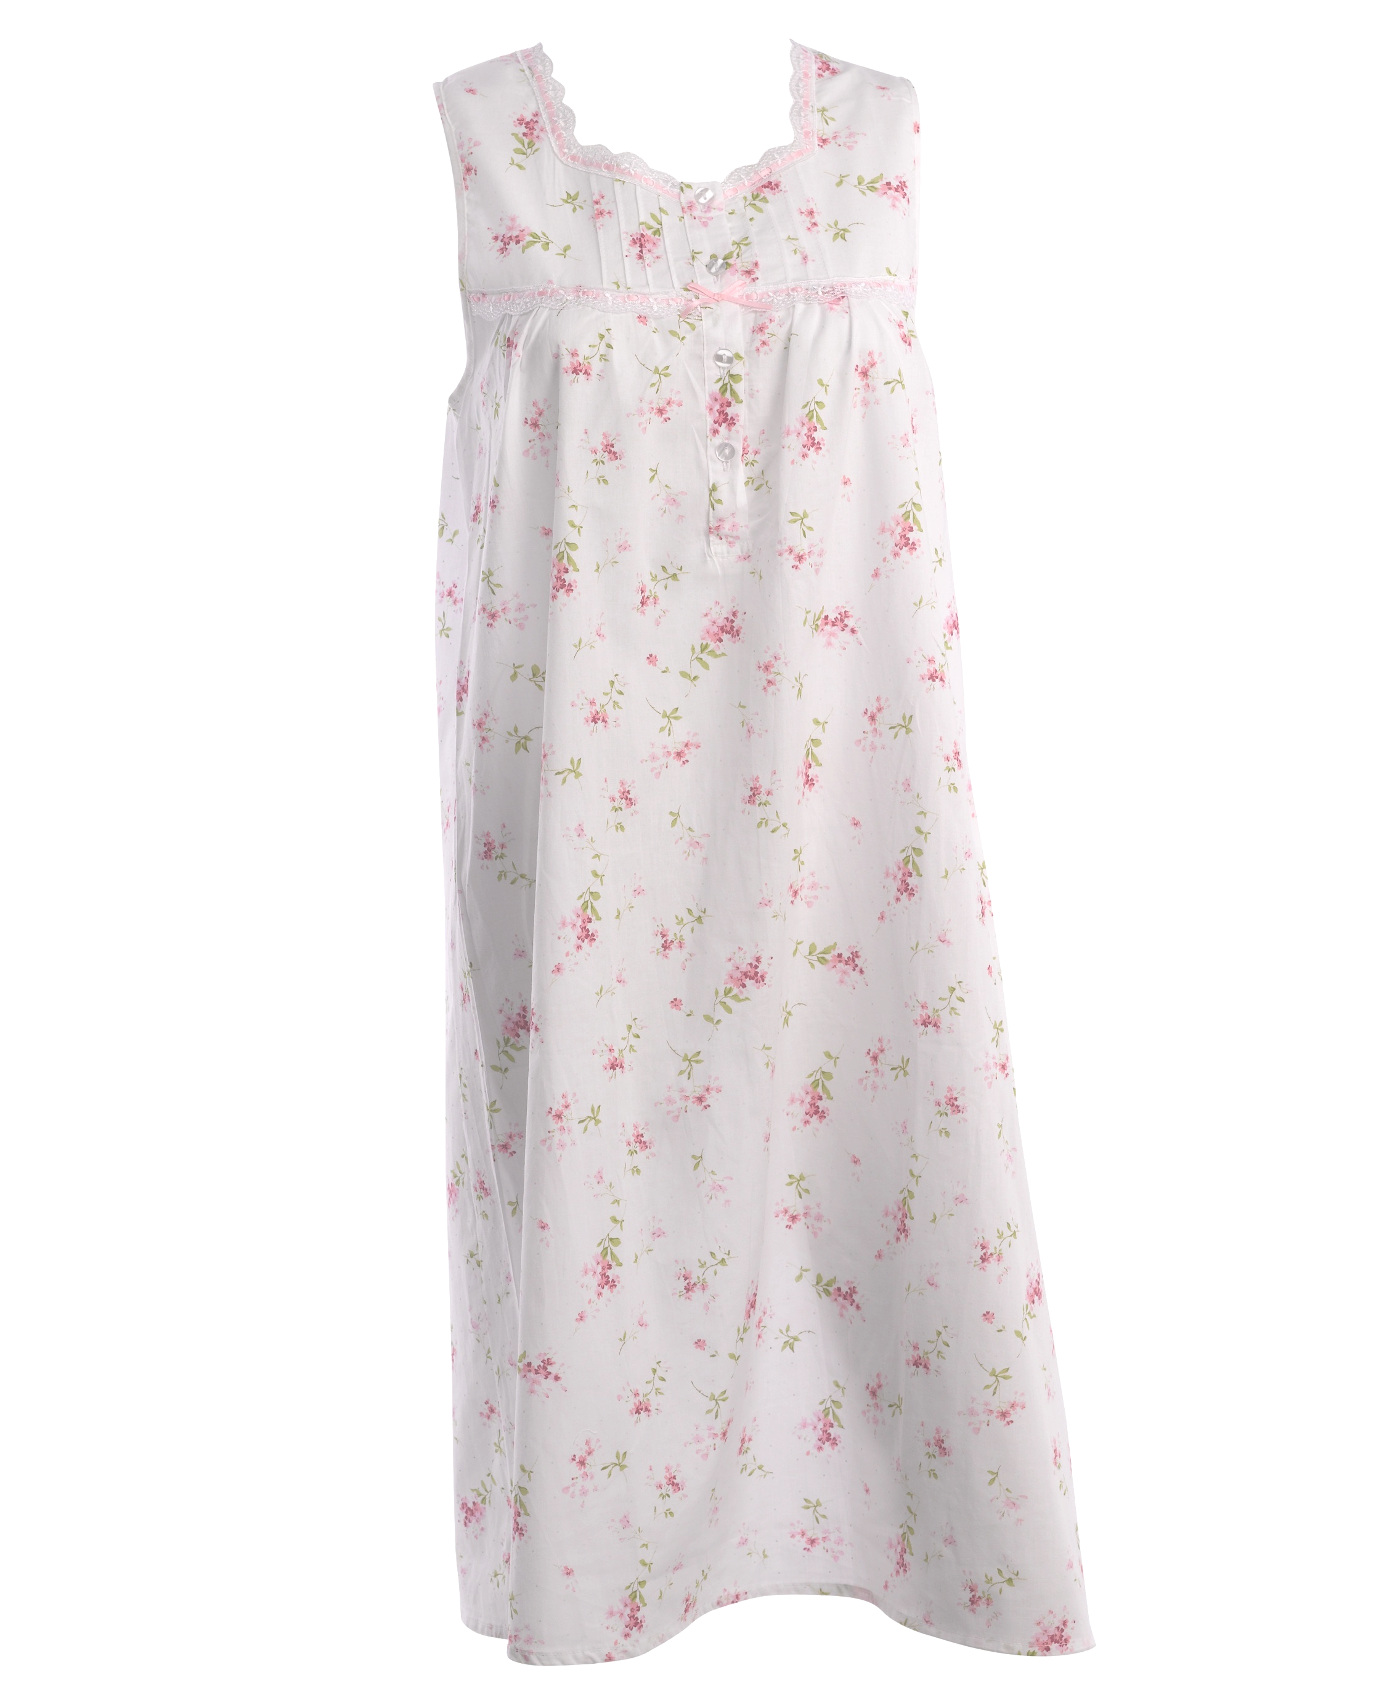 These ladies sleeveless nightdresses by Slenderella have a floral pattern  throughout with lace trim and would be perfect for keeping you cool during  the ... 1718f4cf8